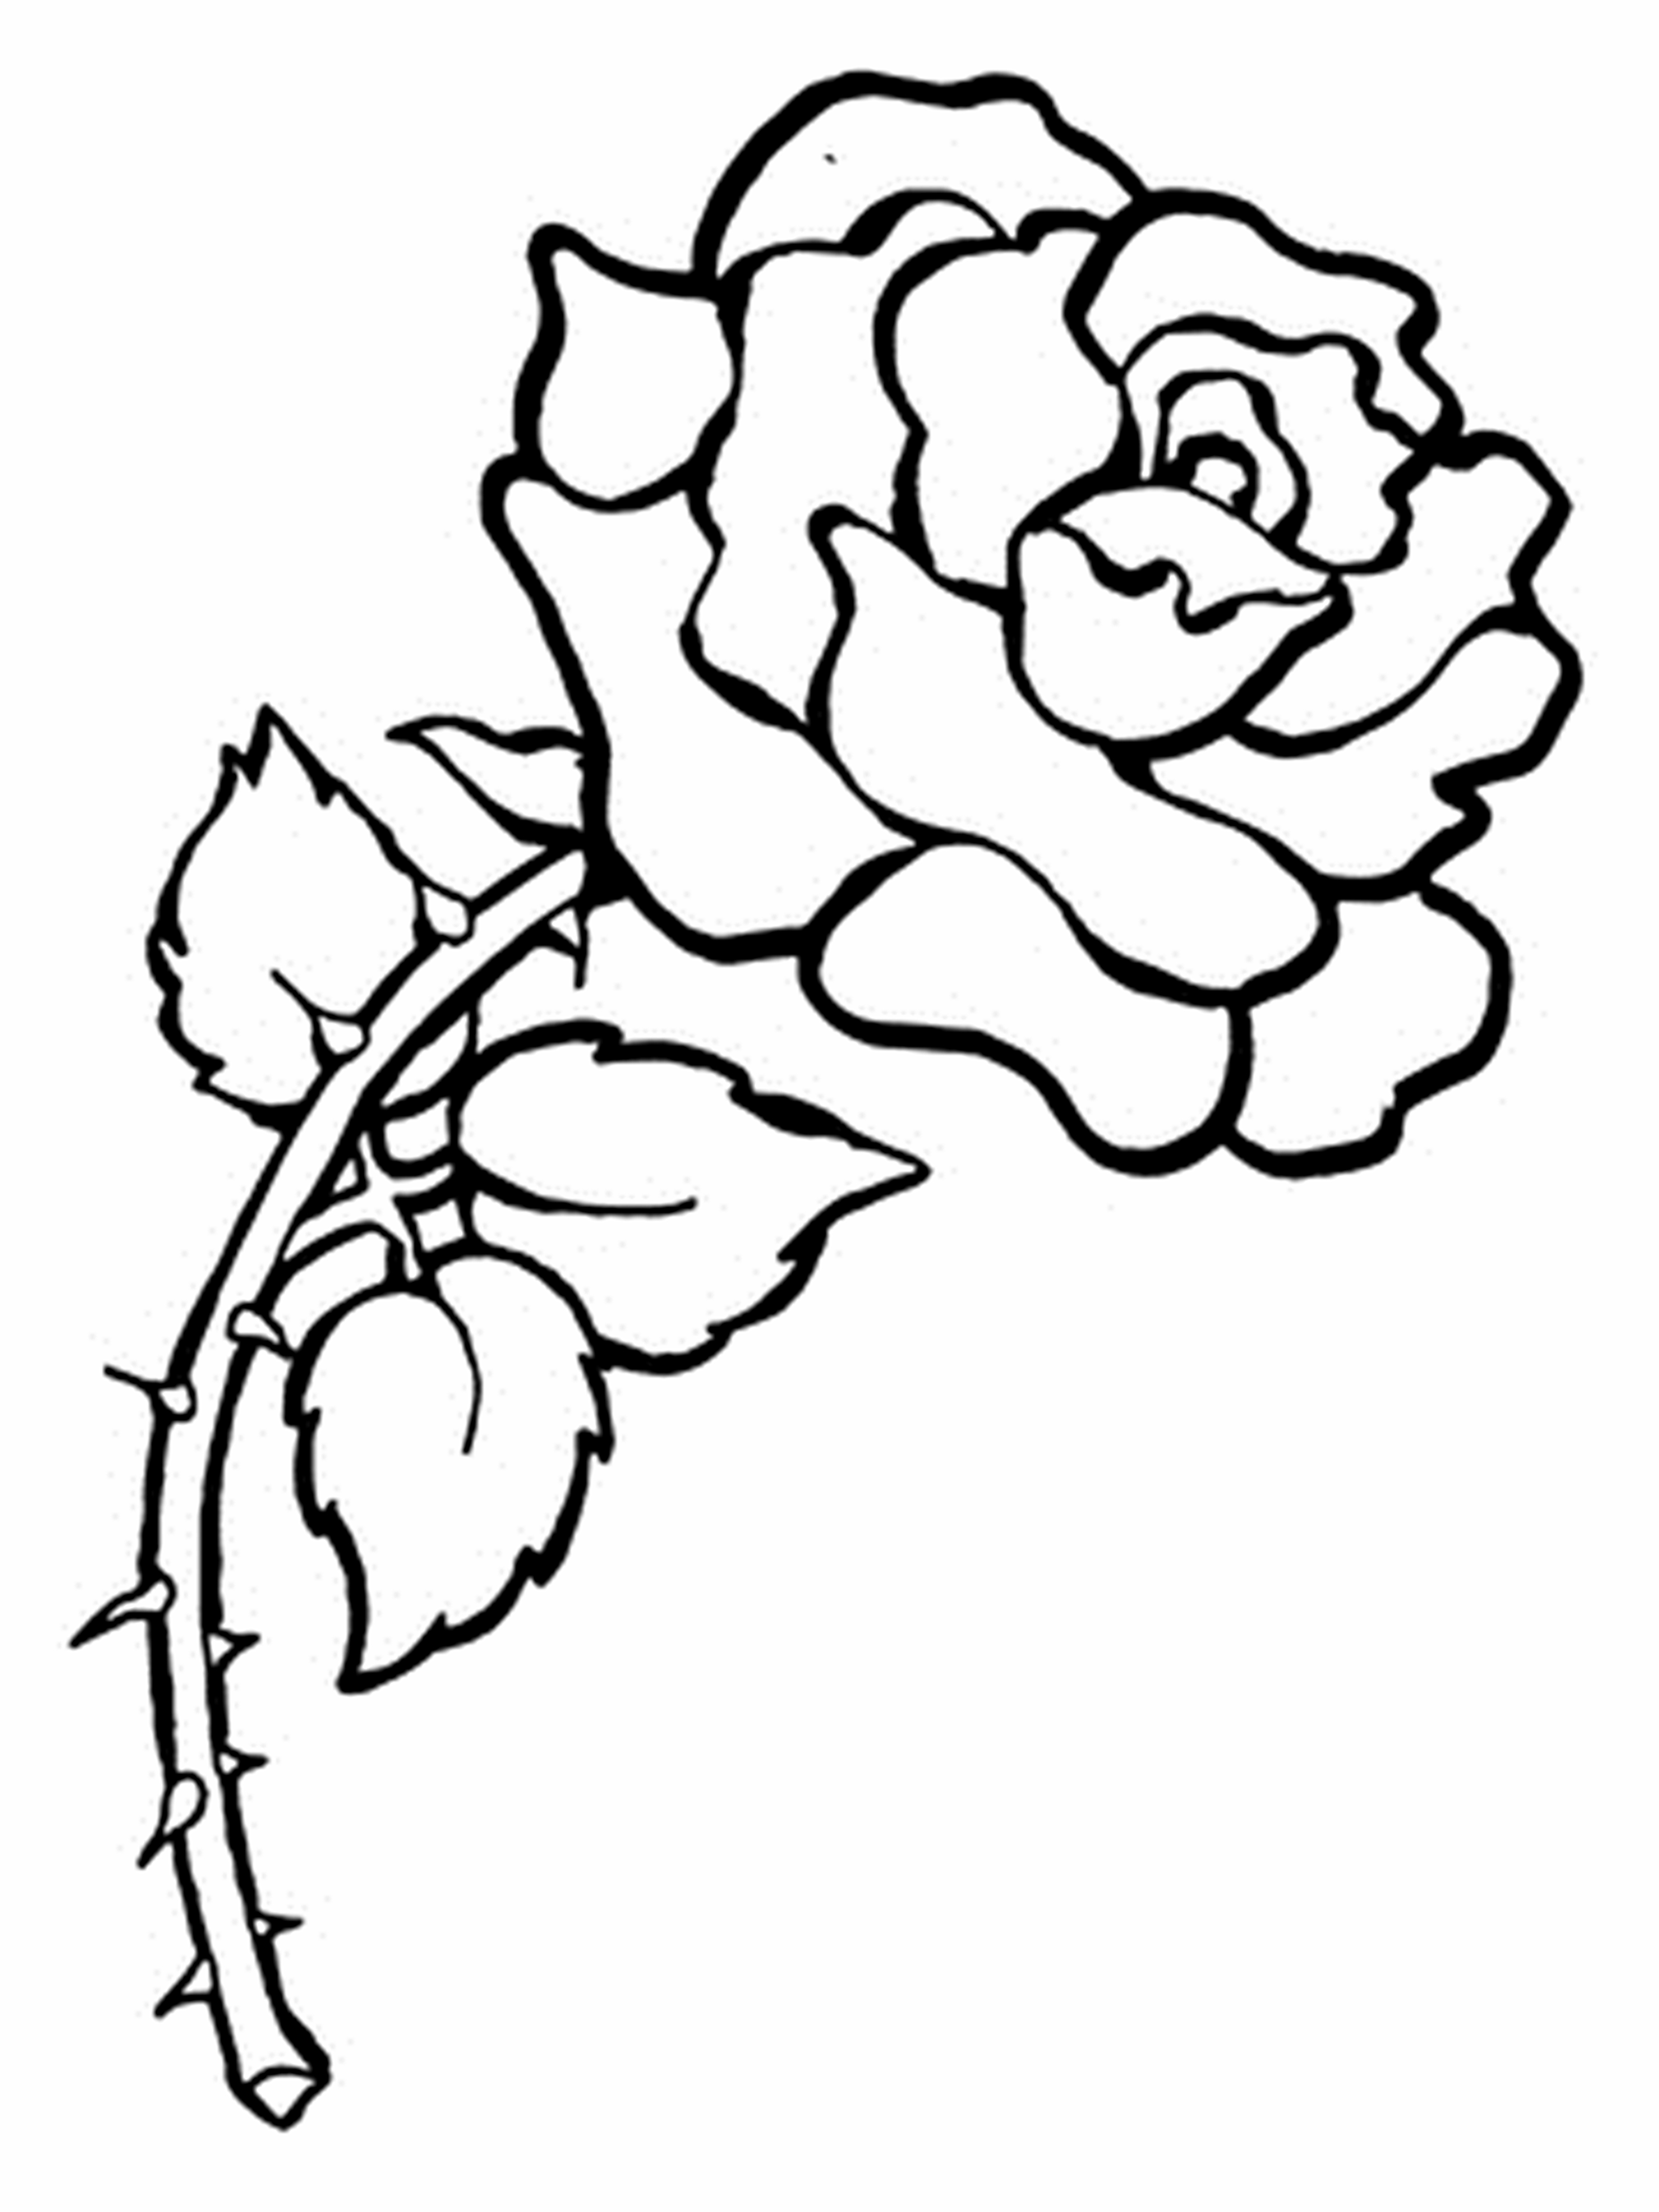 a flower coloring page free printable flower coloring pages for kids best page a flower coloring